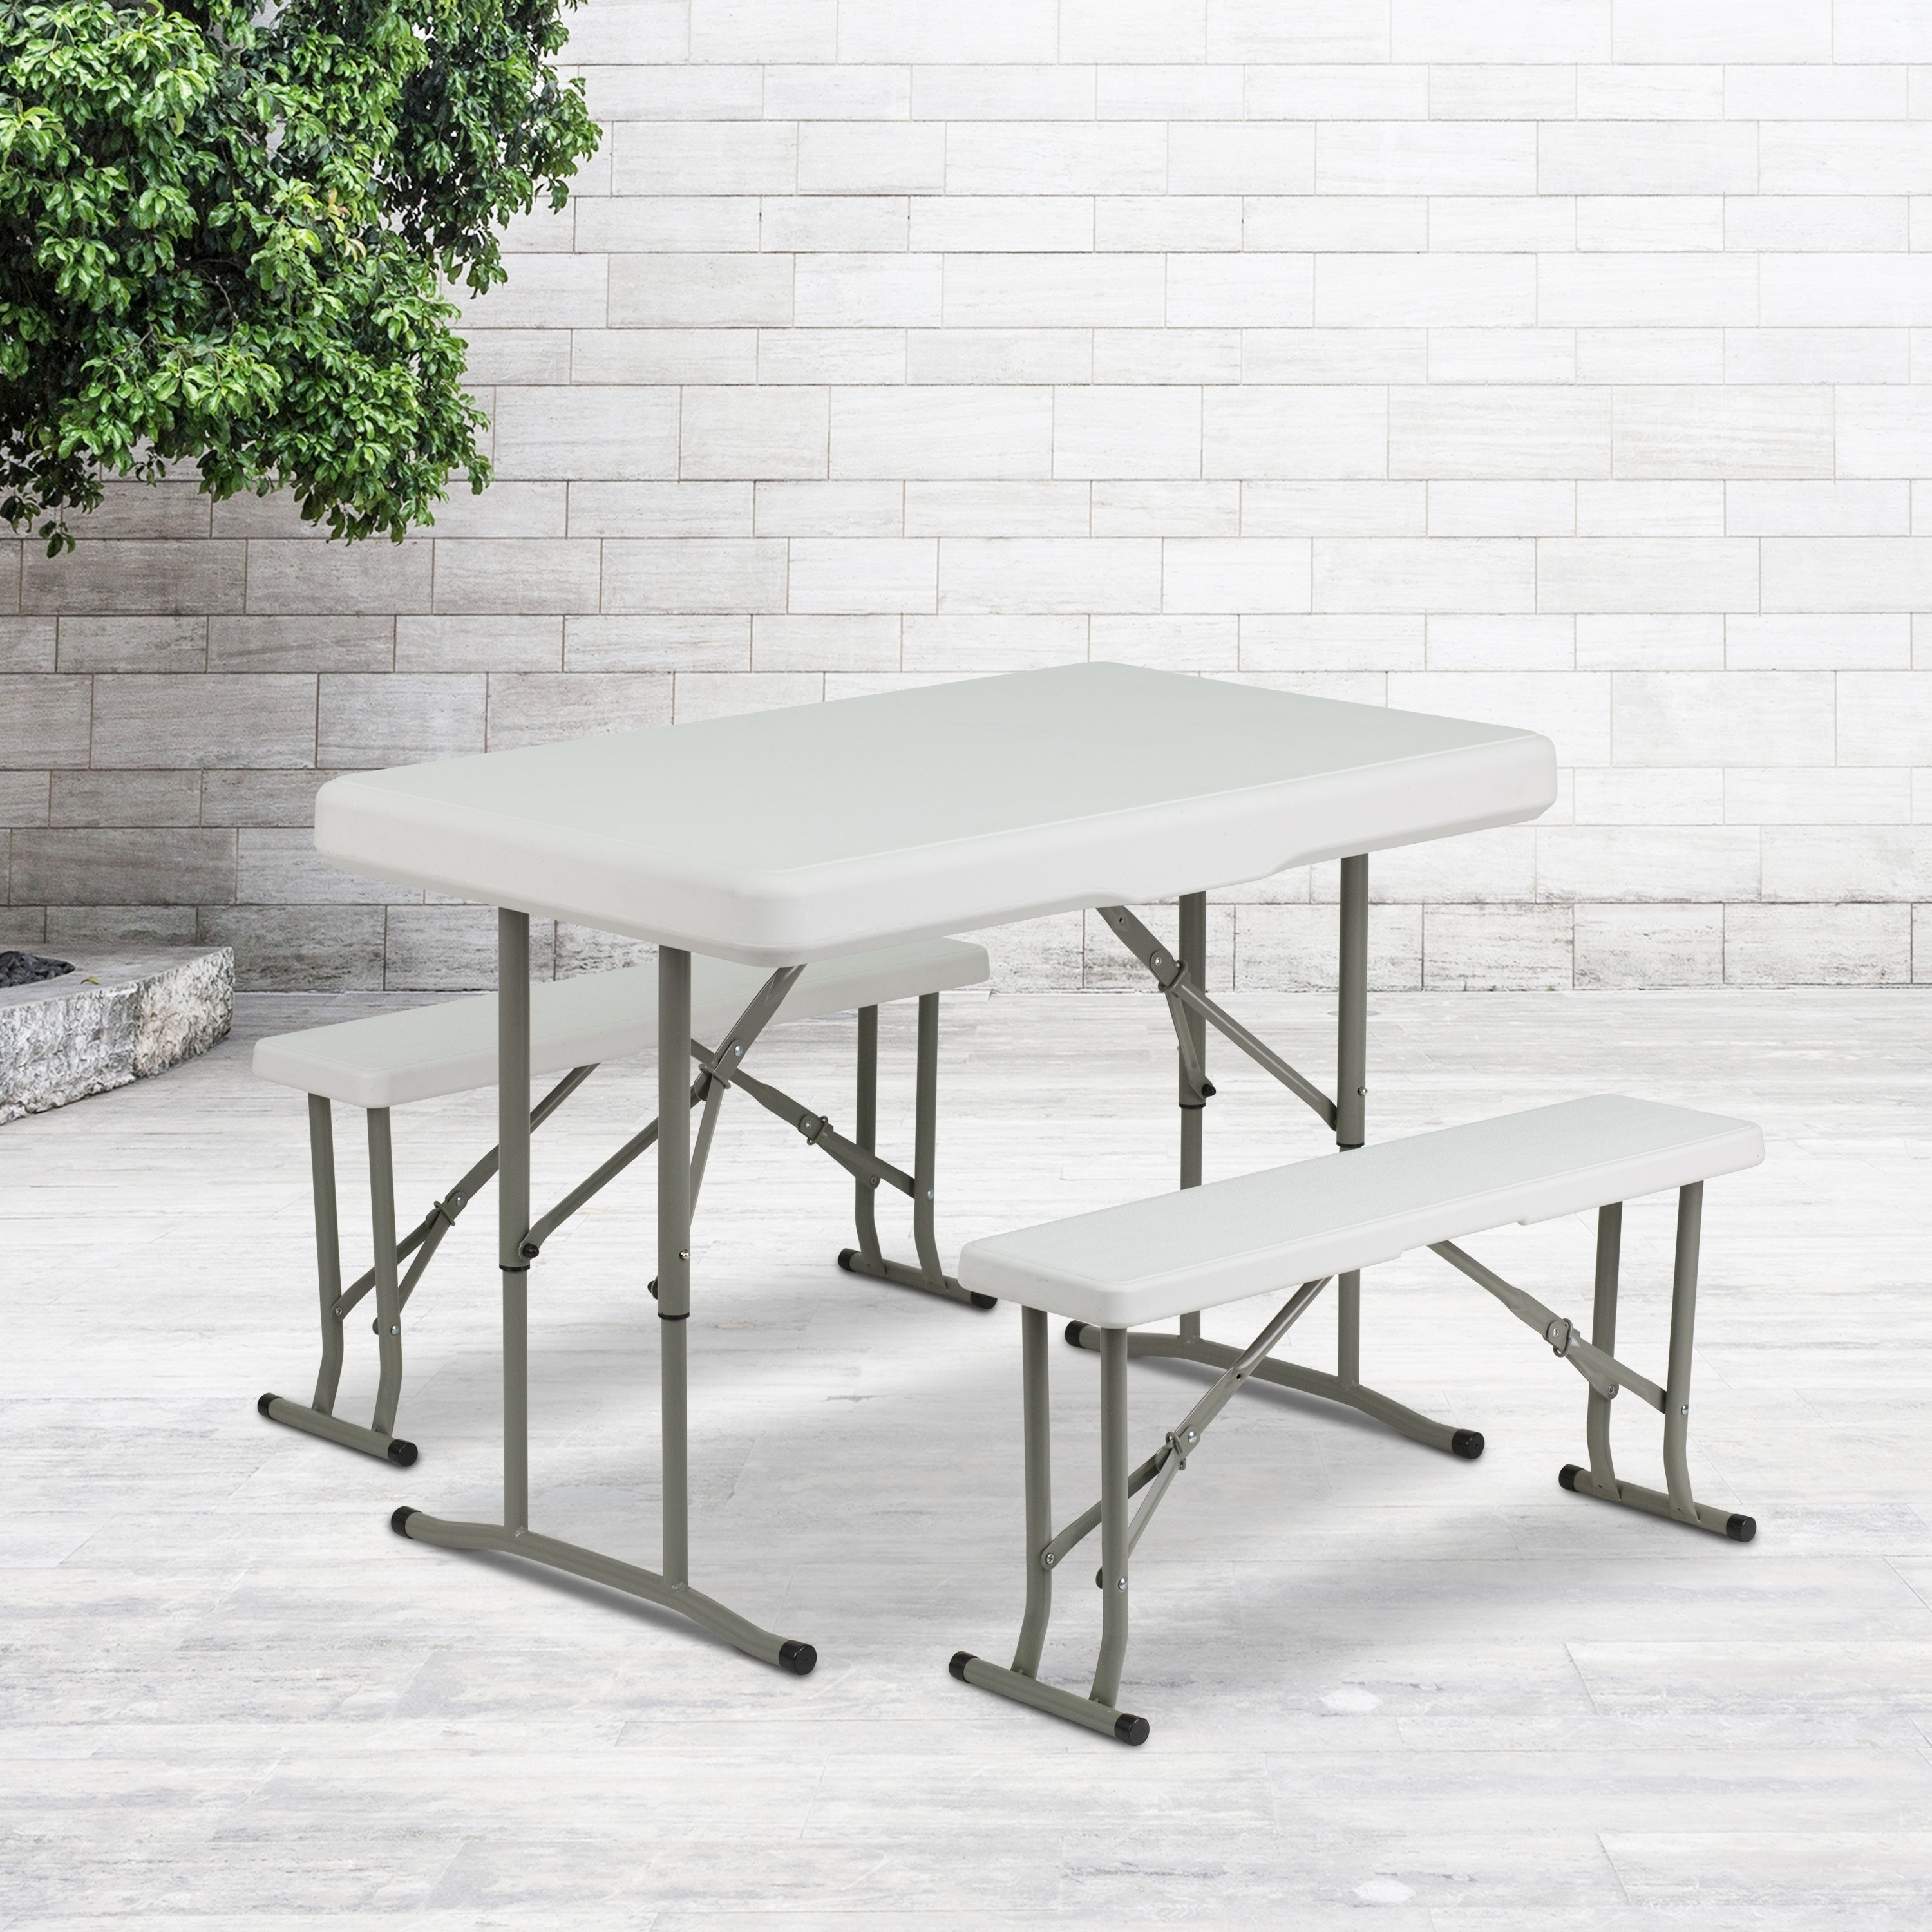 FLASH Furniture Plastic Folding Table and Benches (White)